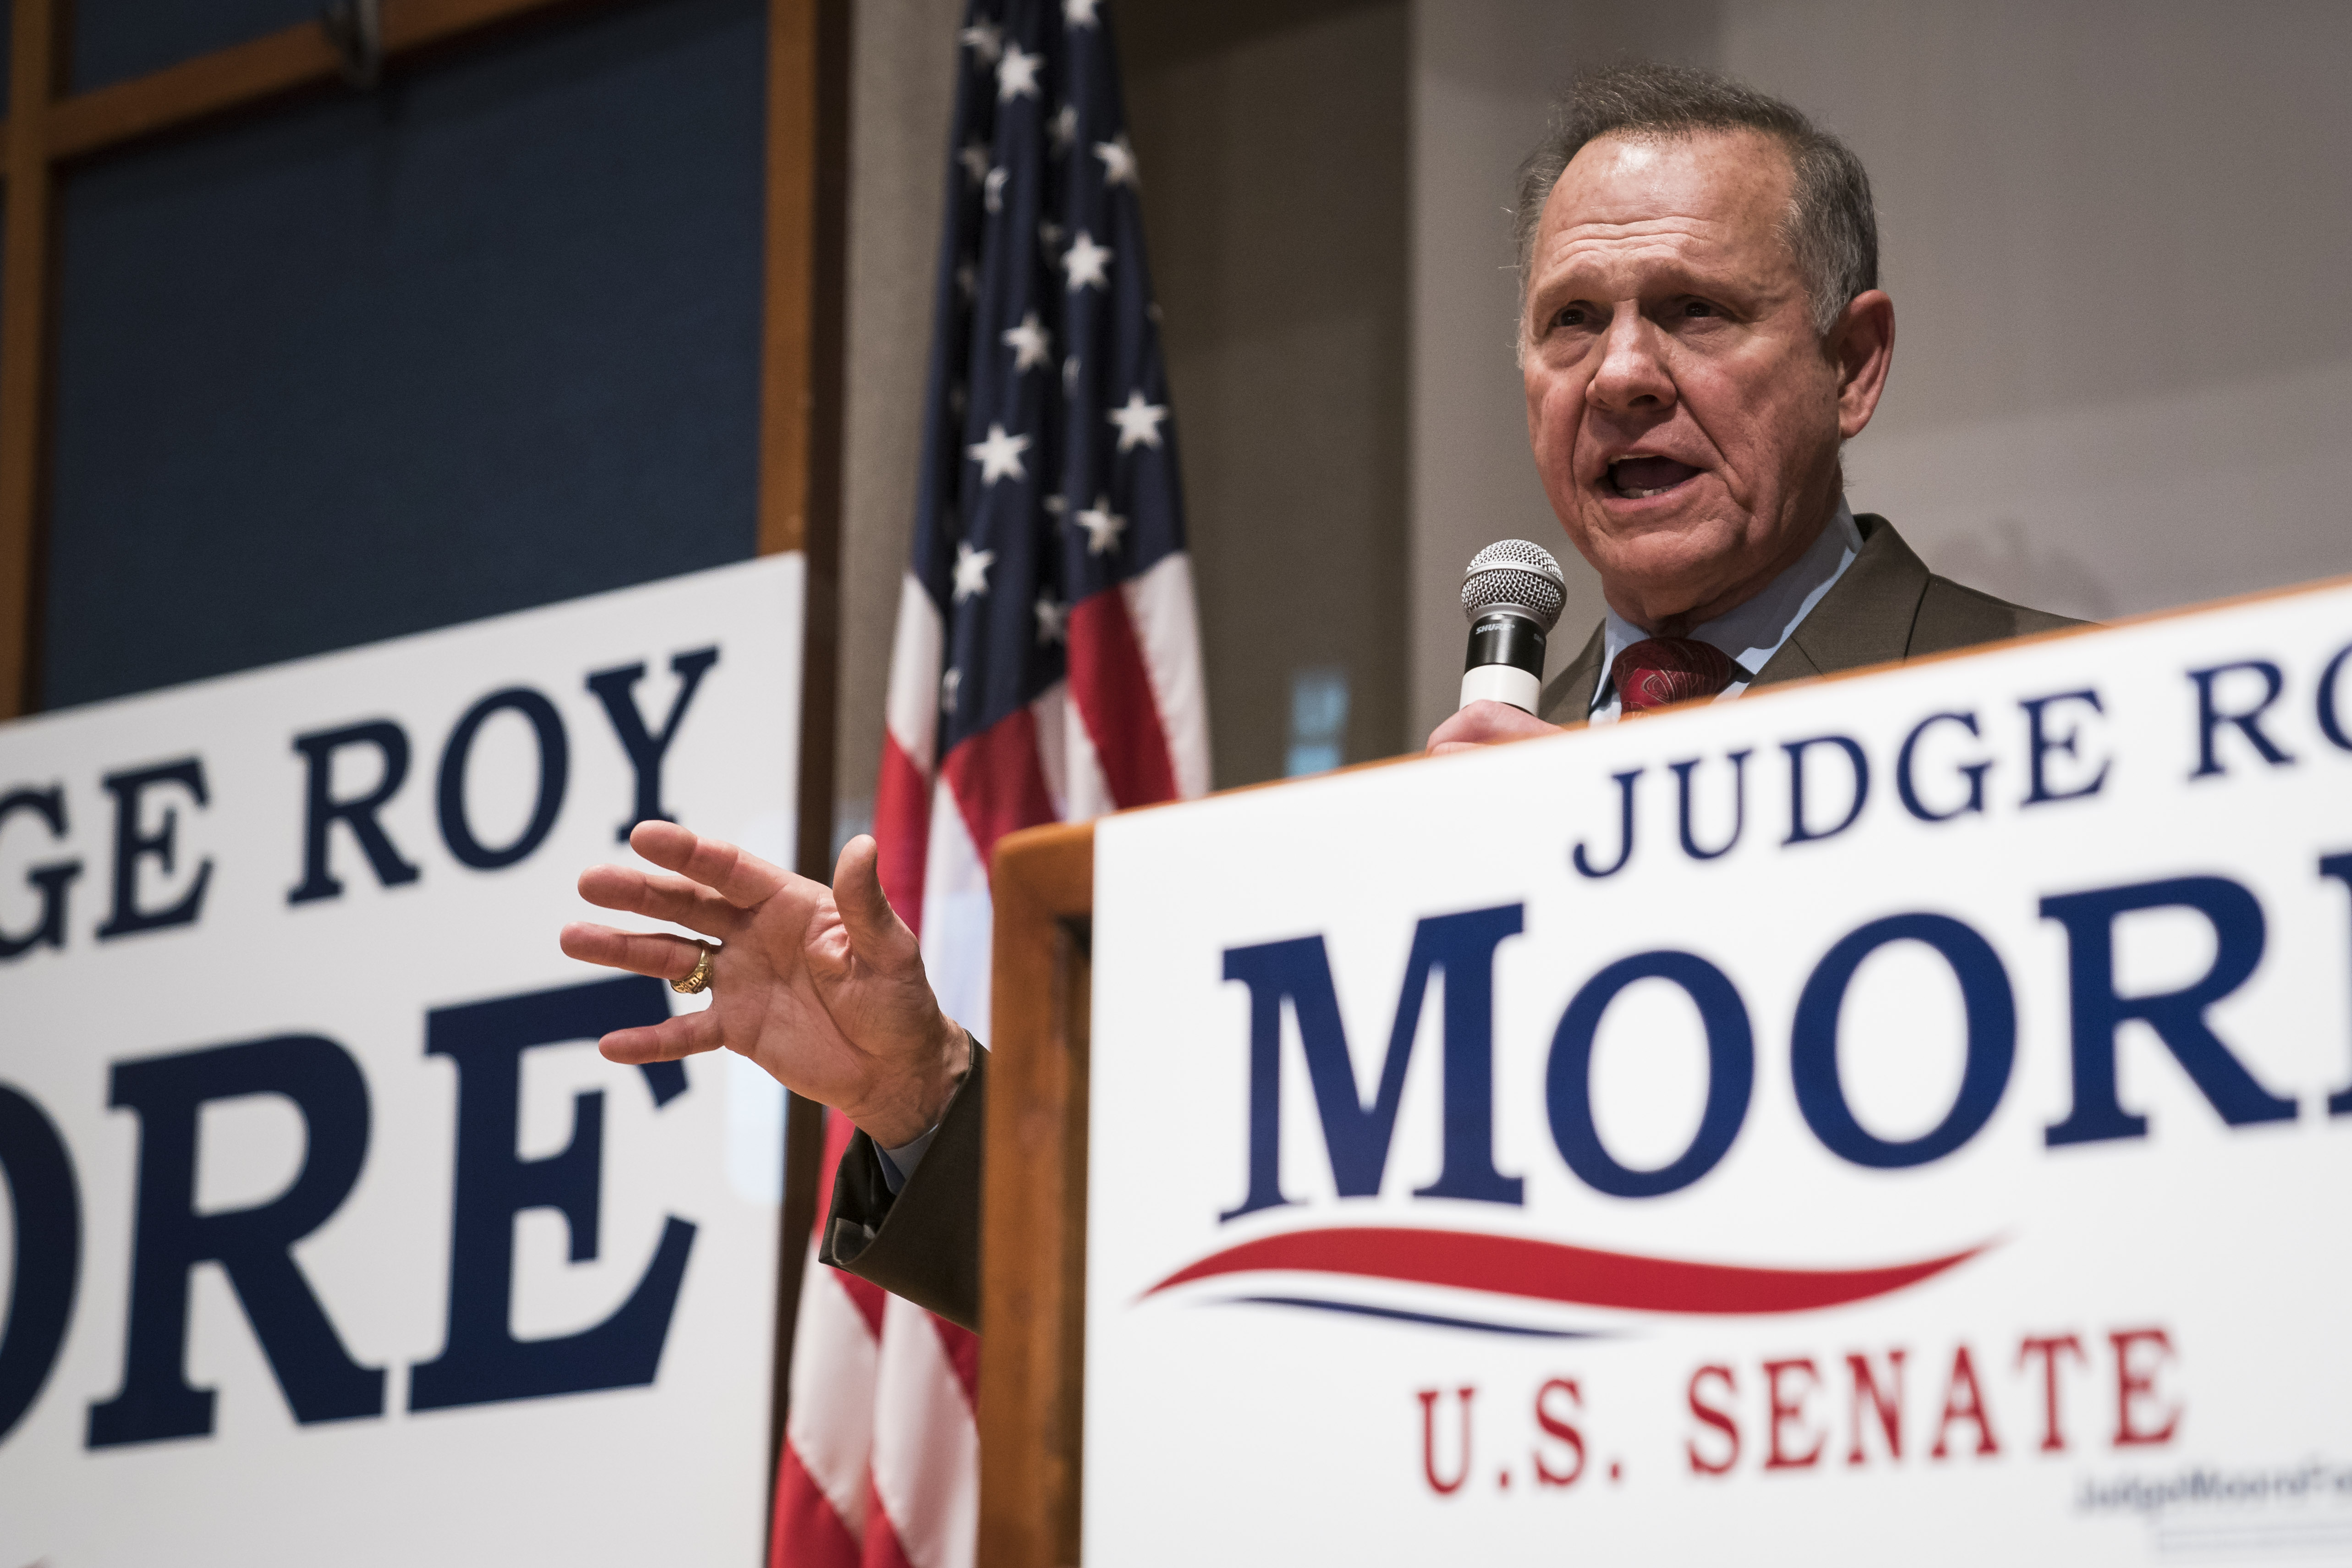 Roy Moore is running for Alabama's Senate seat — again